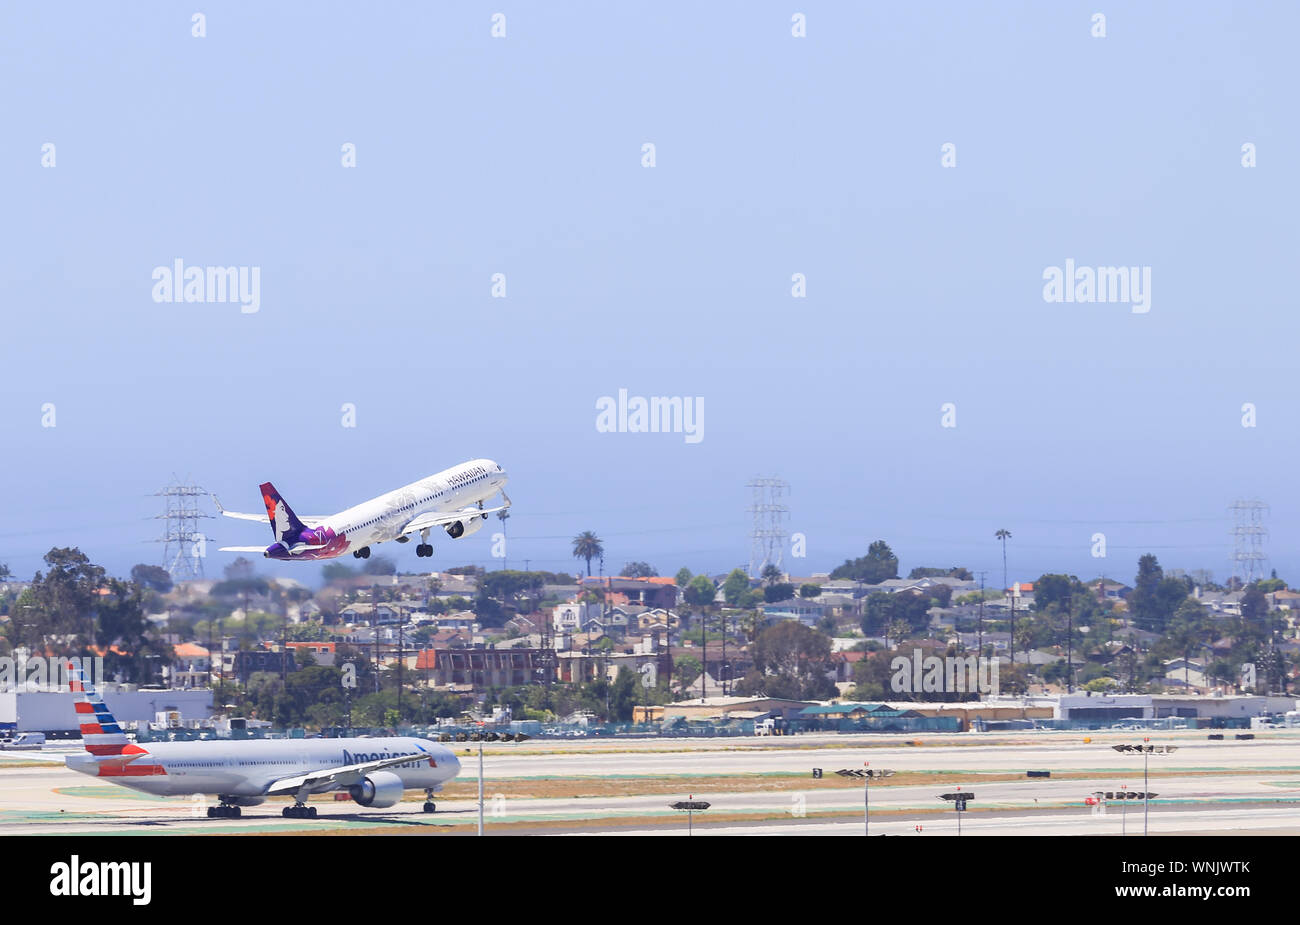 Los Angeles, California, USA - May 22, 2019: A Hawaiian Airlines plane takes off from Los Angeles International Airport (LAX). In the foreground an Am Stock Photo